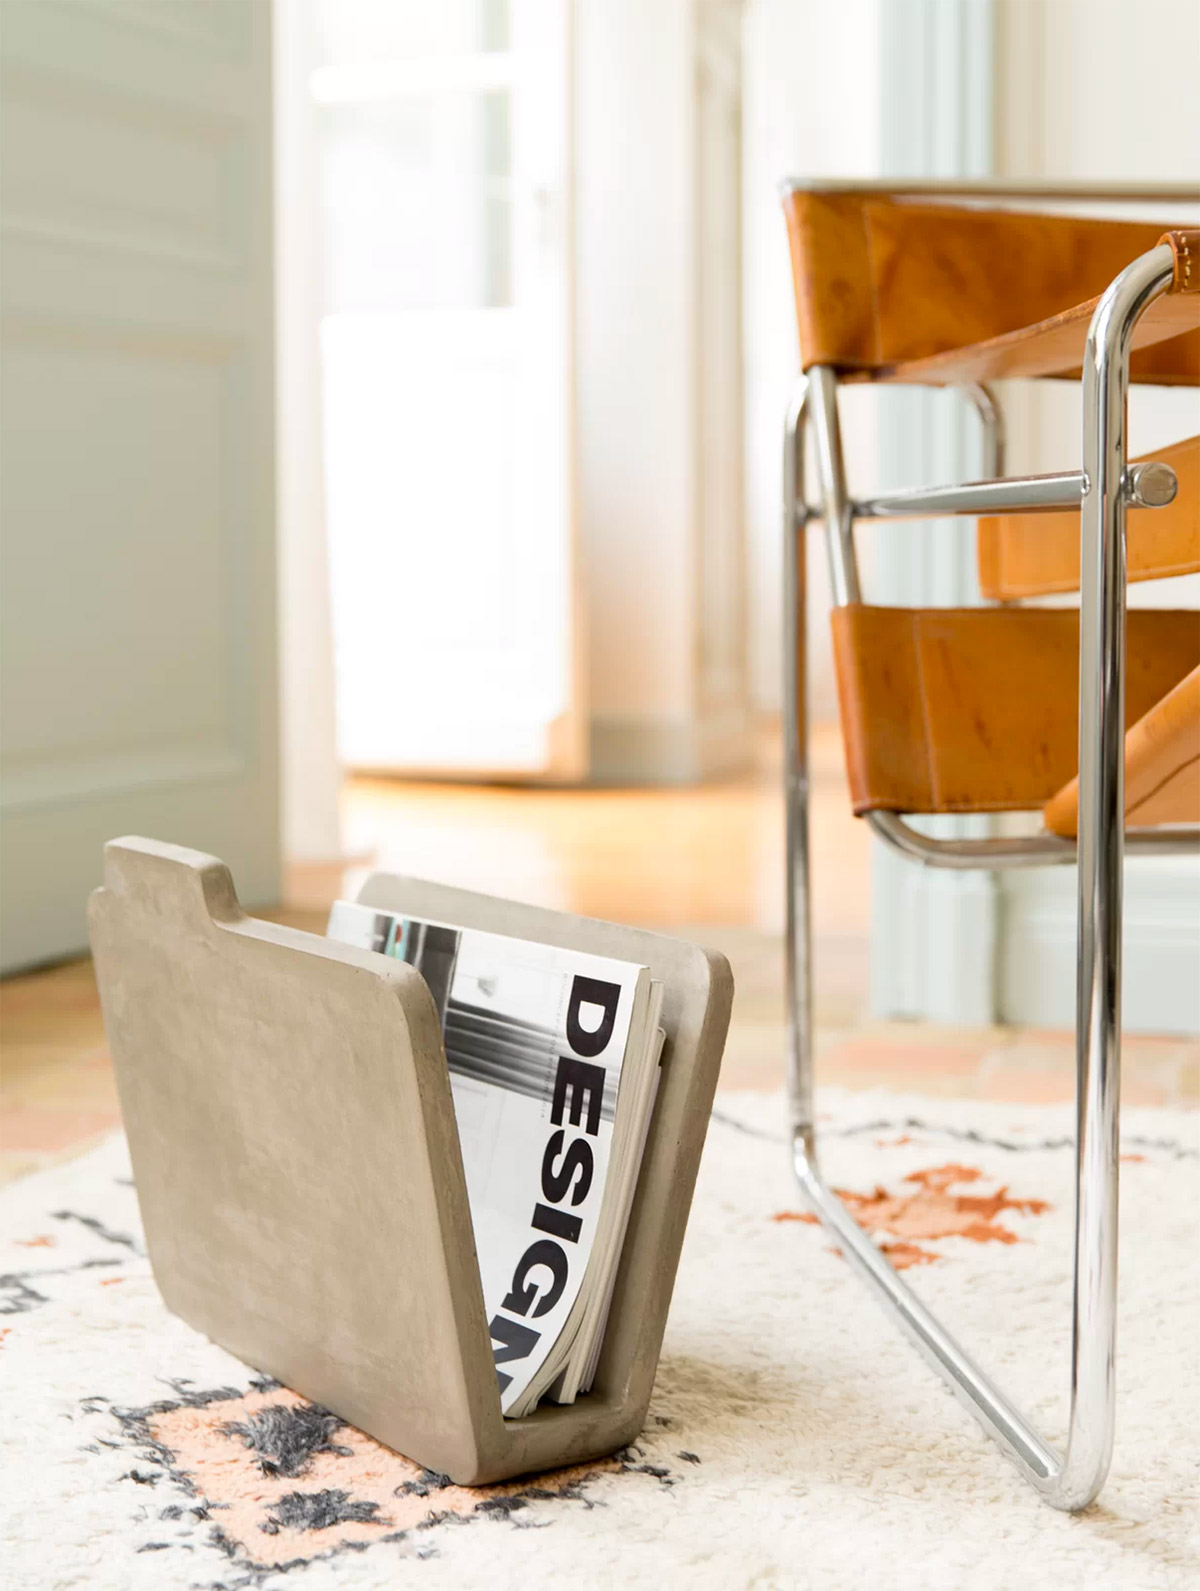 designer-concrete-magazine-rack-gift-for-professional-architects